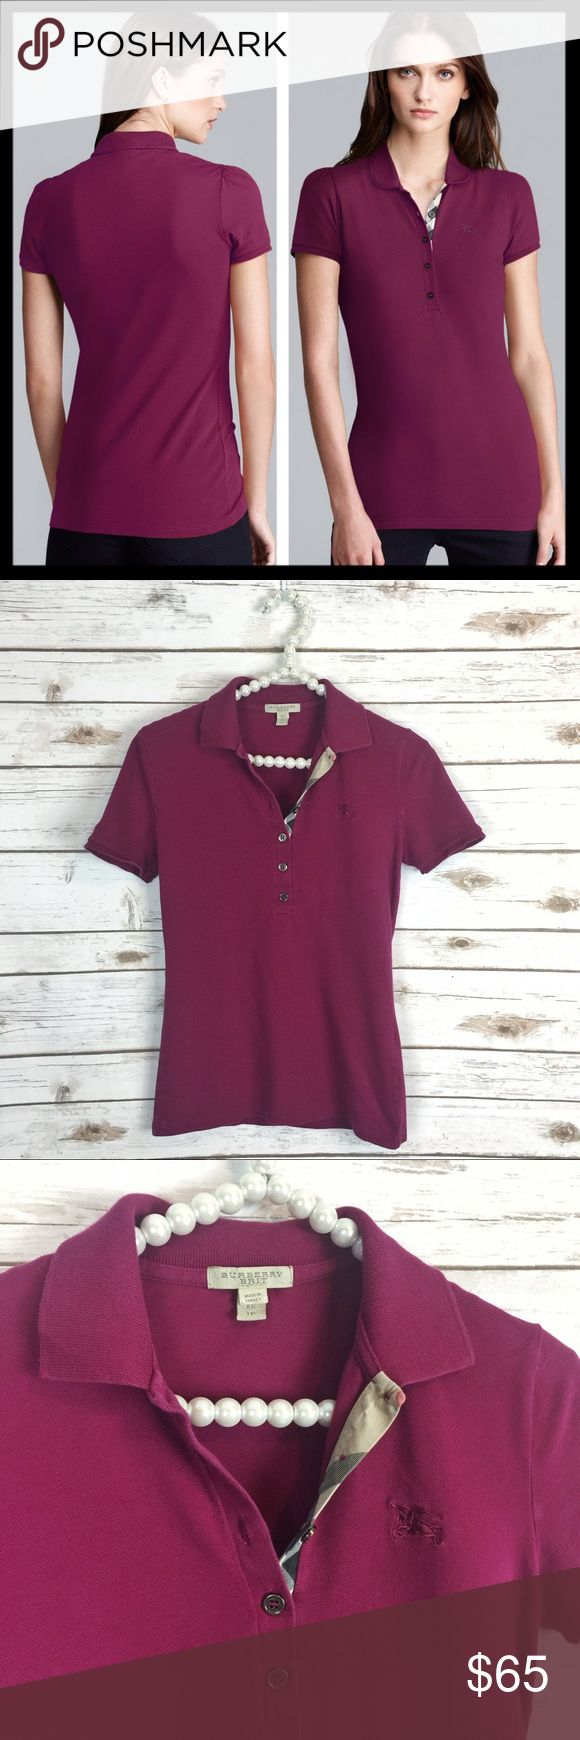 burberry brit // short sleeve pique polo shirt Burberry Brit's pique polo with signature check trim. Short sleeves. Semi-fitted style. 98% cotton, 2% elastane. Machine washable. Gently worn and in great preowned condition. Color is a beautiful wine purple. Burberry Tops Tees - Short Sleeve